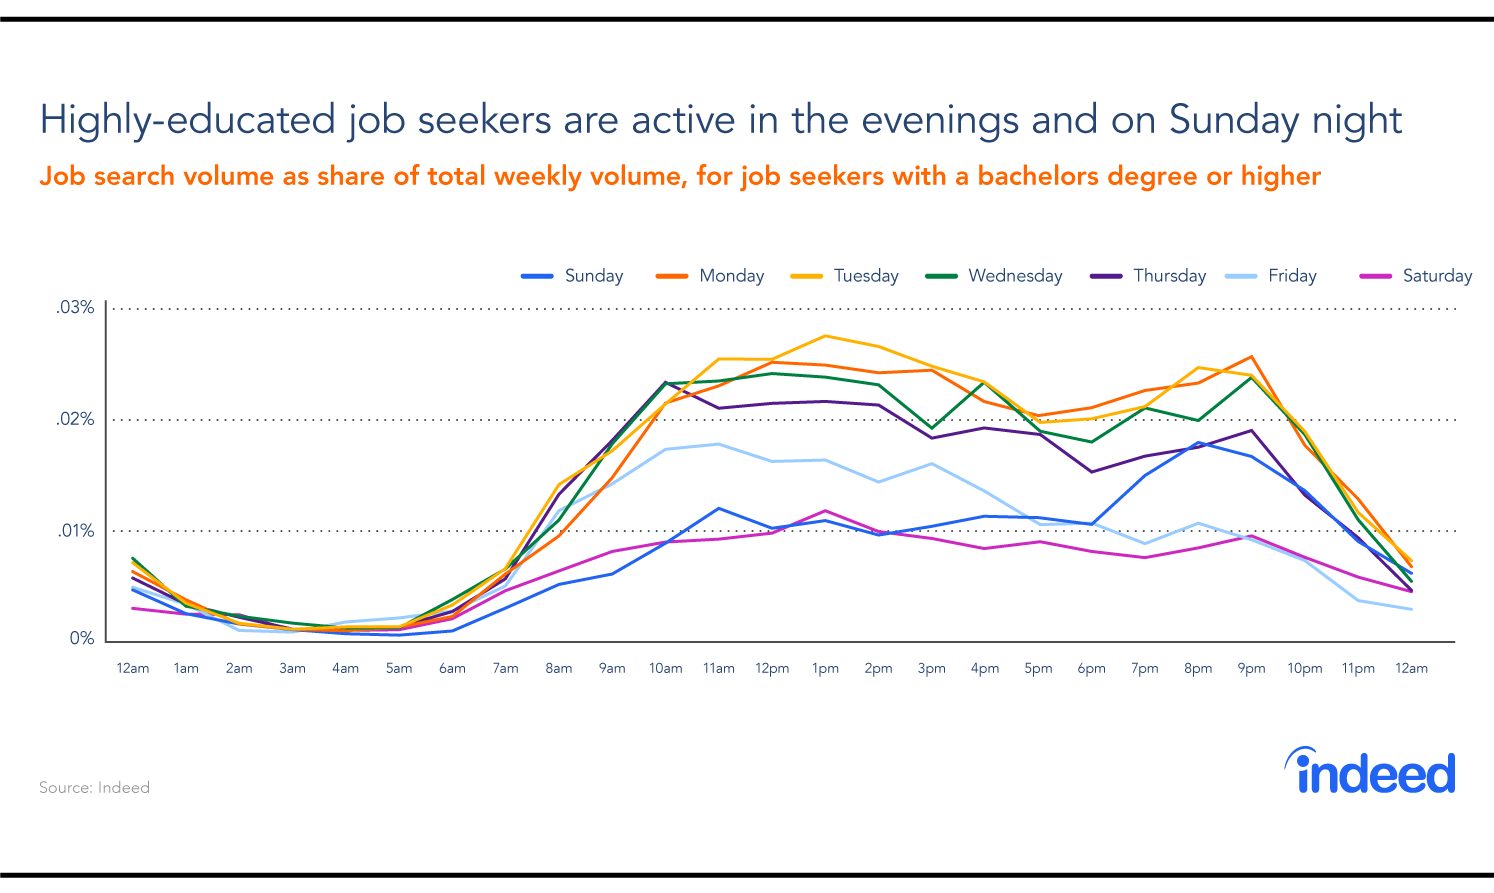 A graph showing the busiest days of the week and times of day that highly educated people look for jobs.